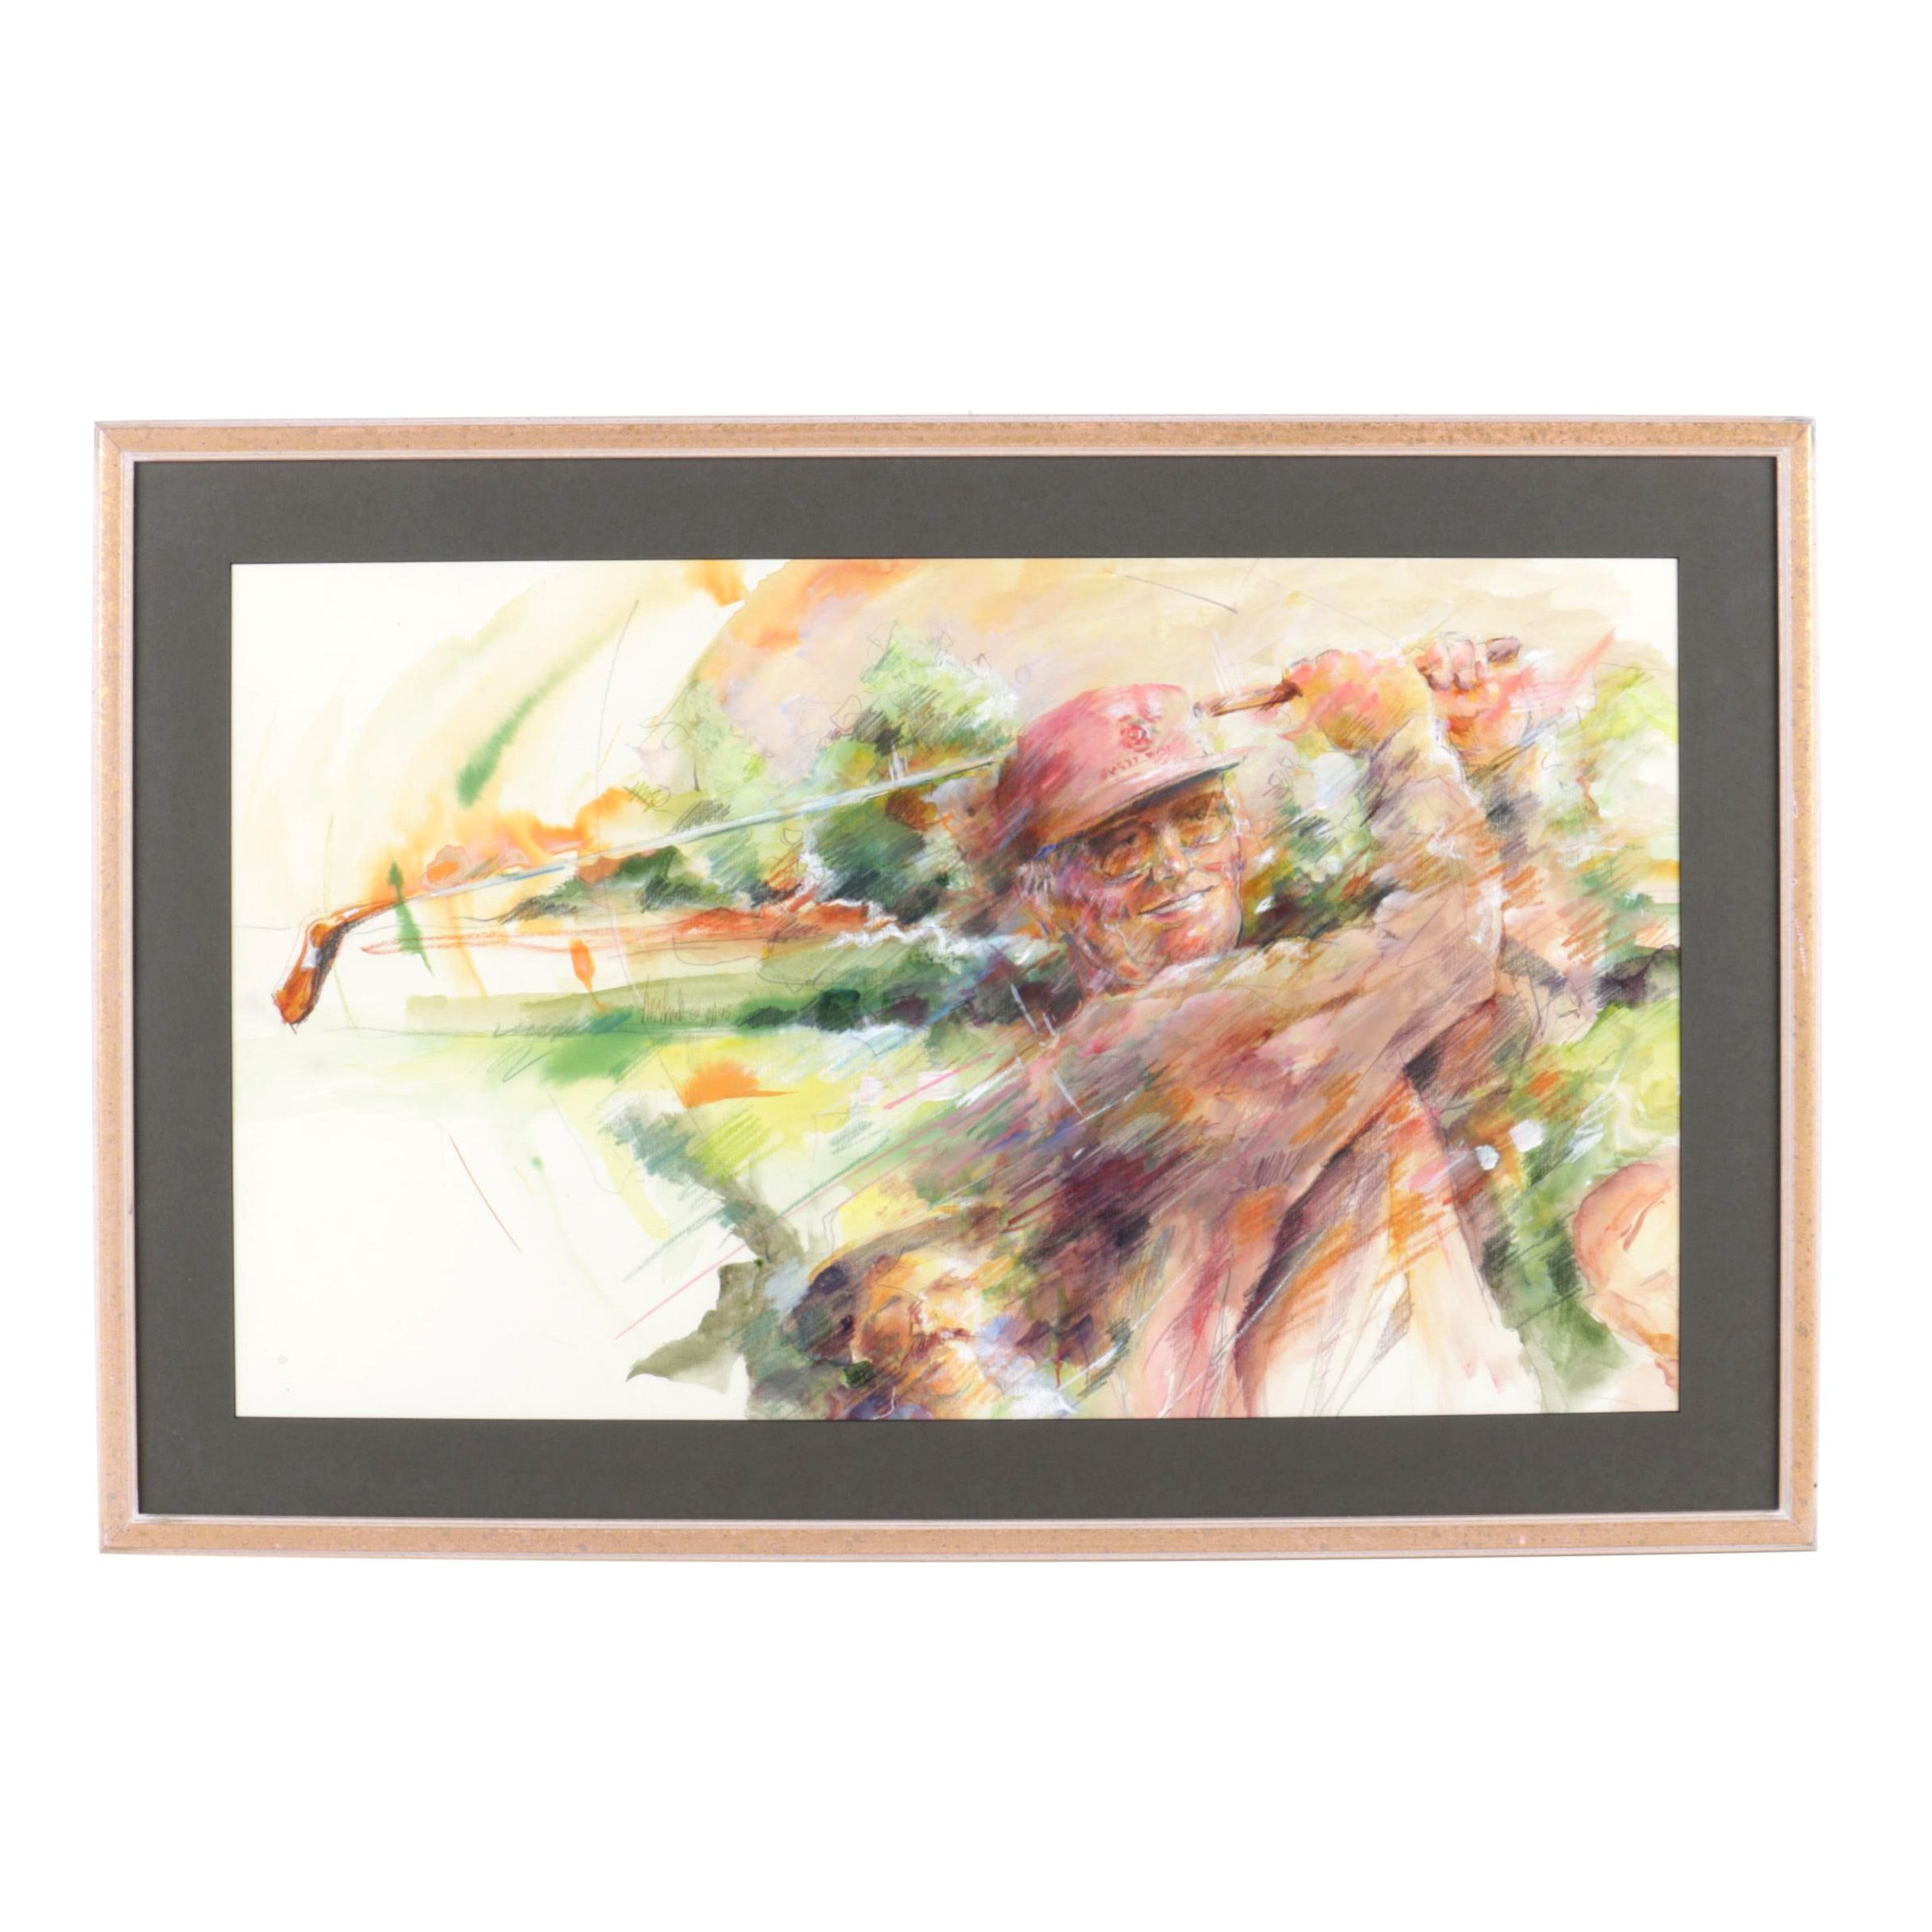 Watercolor and Graphite Illustration on Paper of Golfer in Mid-Swing